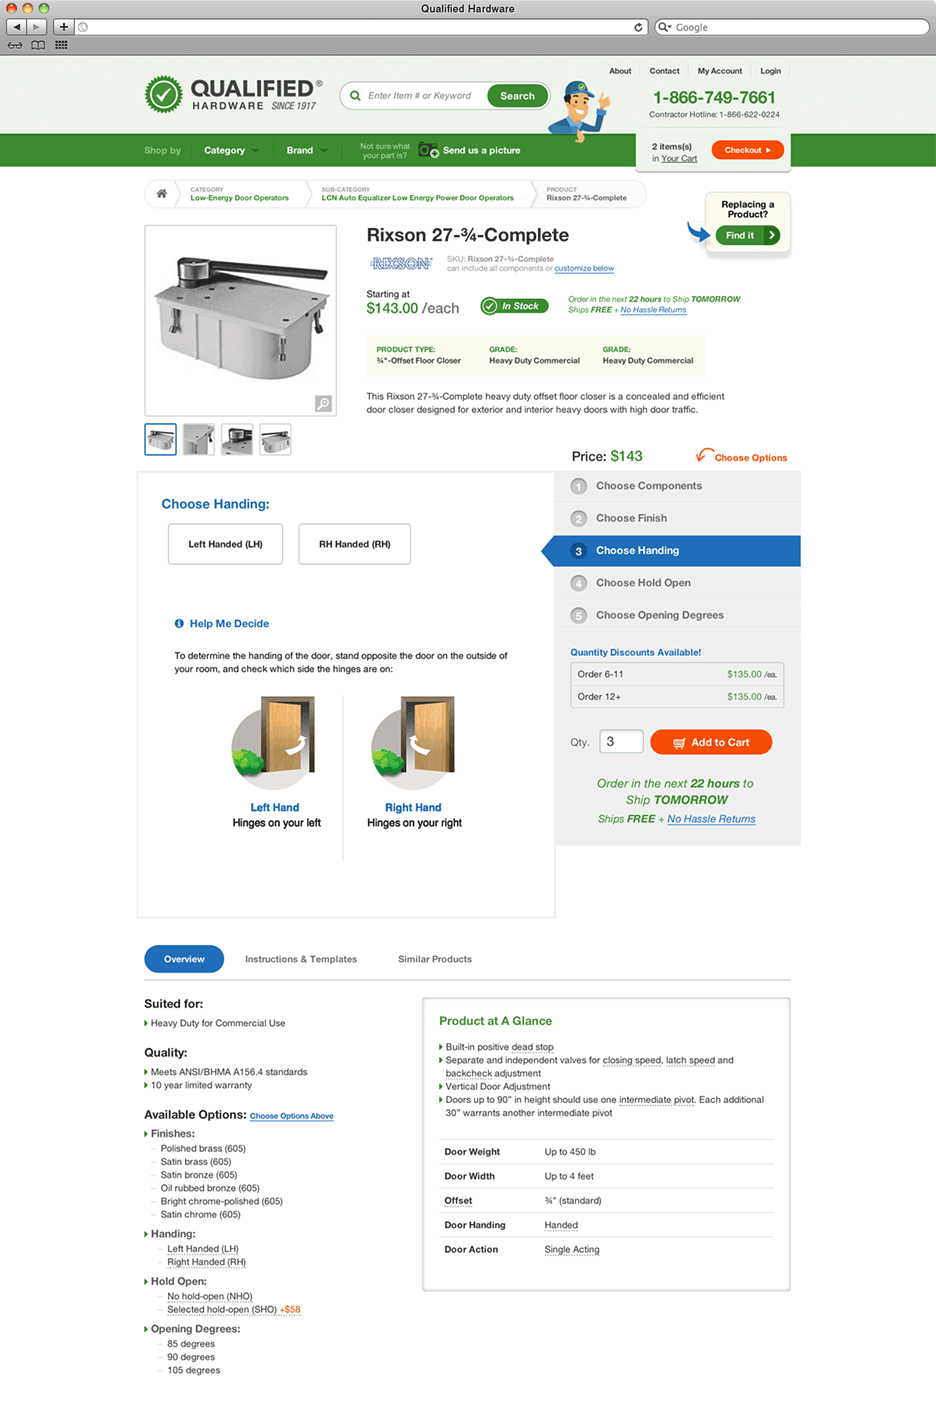 Qualified Hardware product page - full